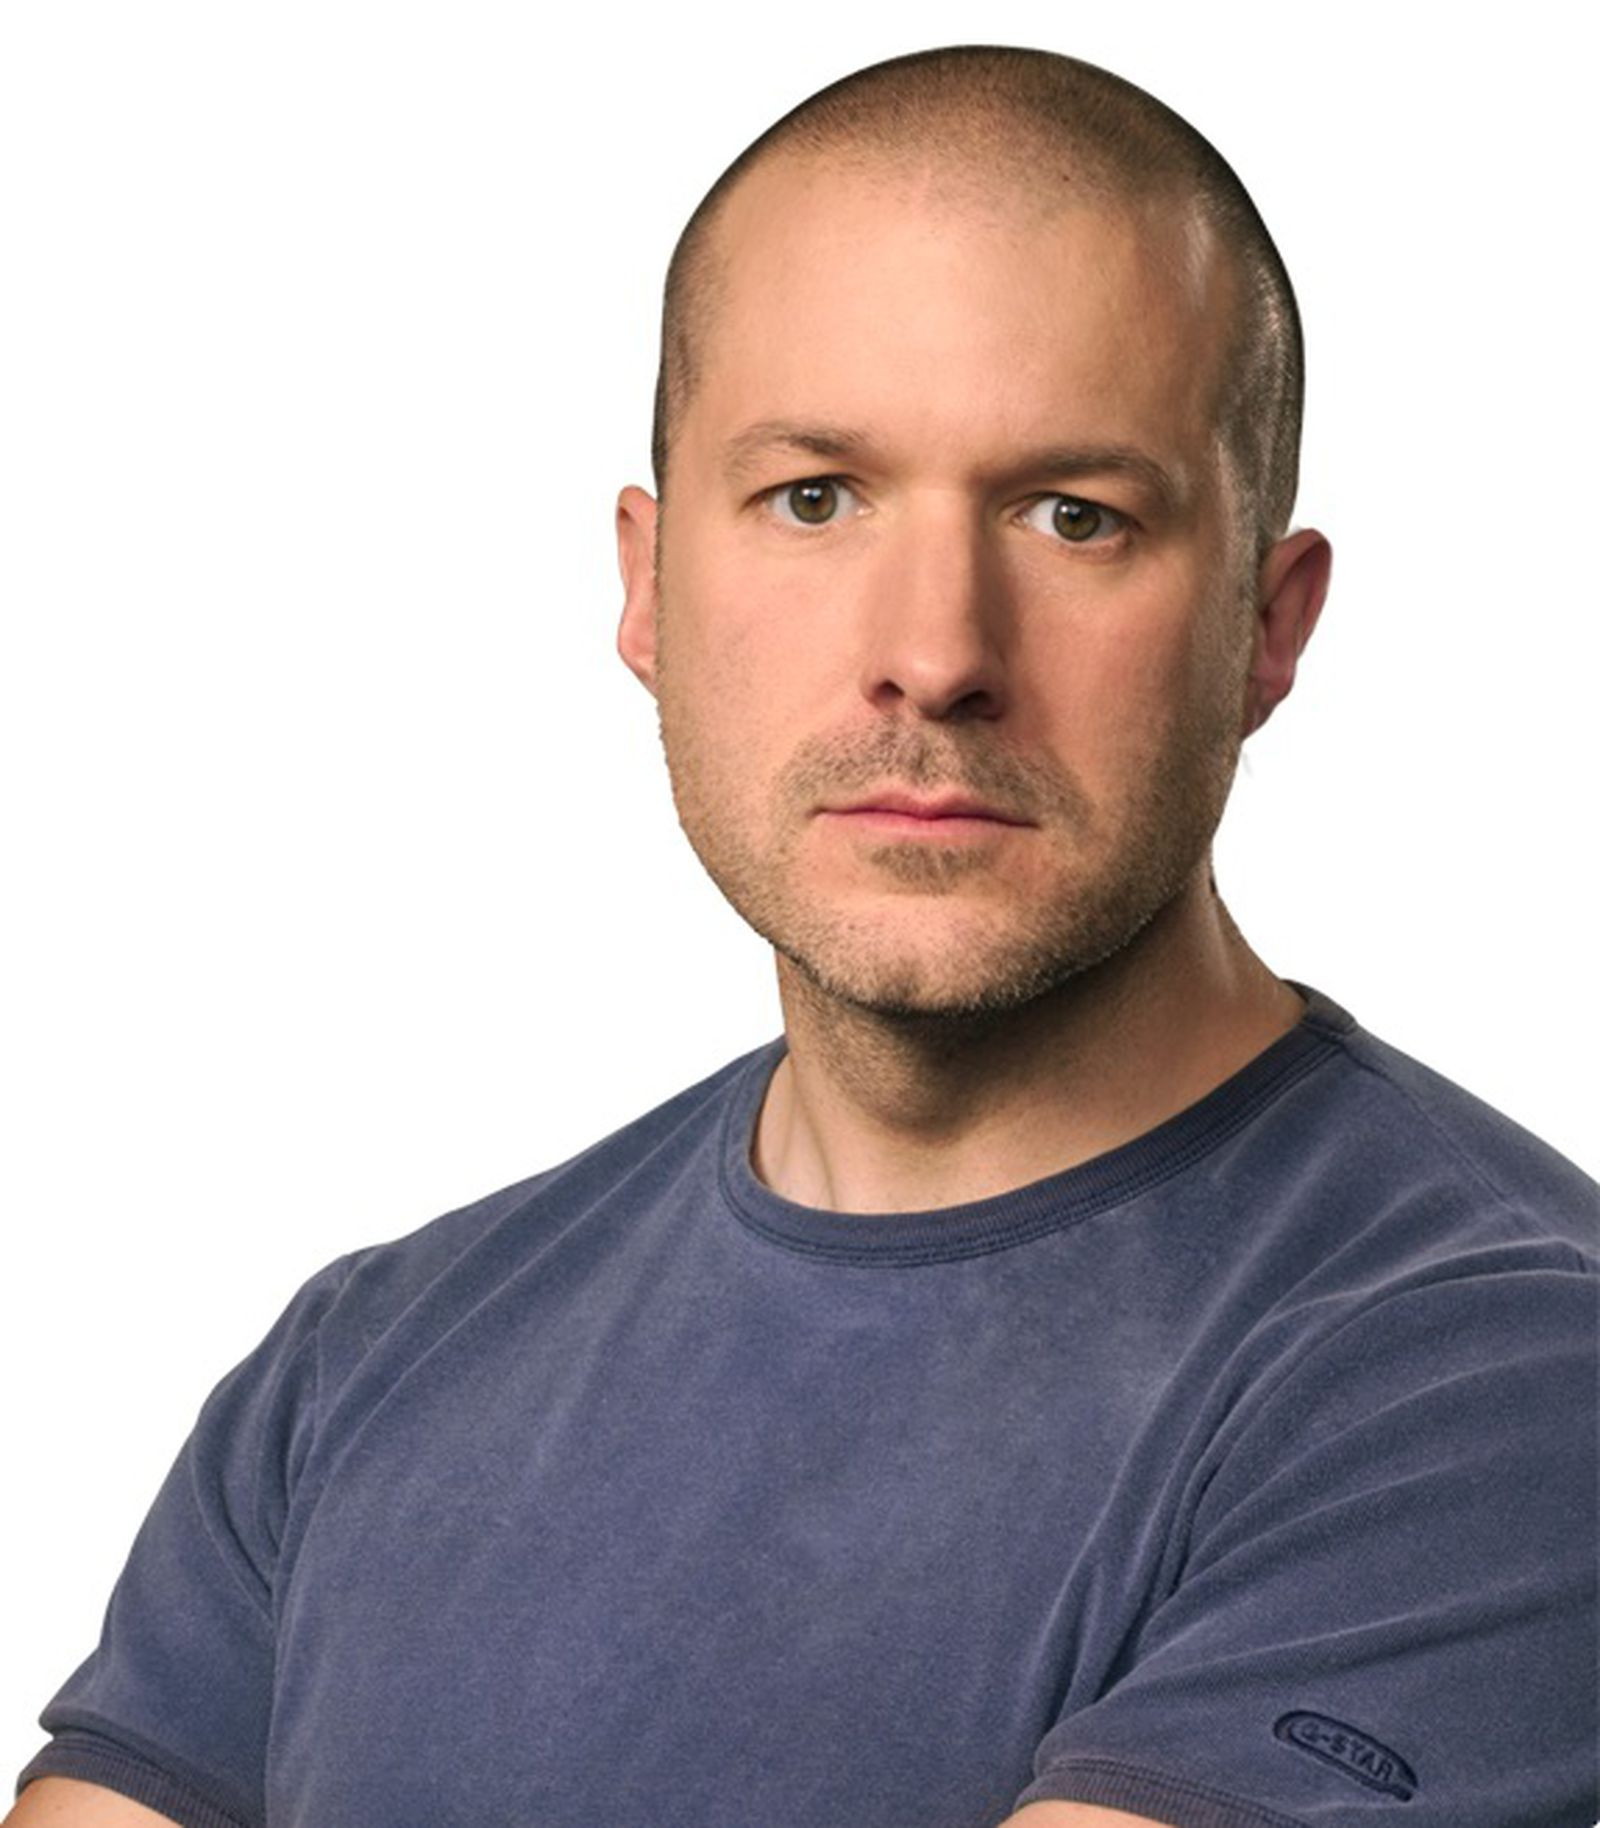 photo of Airbnb Working With Jony Ive's 'LoveFrom' Company image